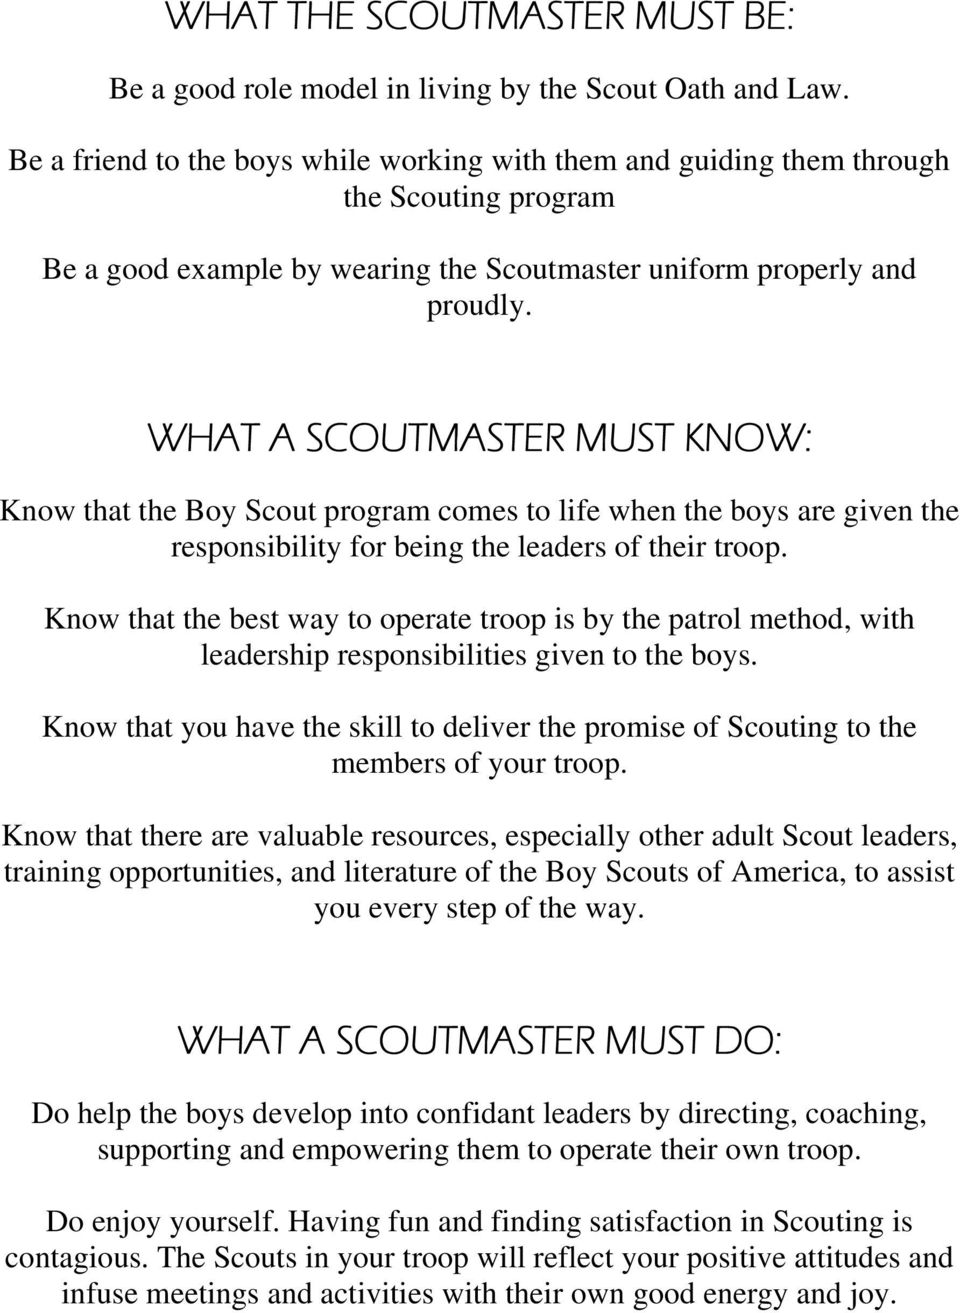 What A Scoutmaster Must Know That The Boy Scout Program Comes To Life When